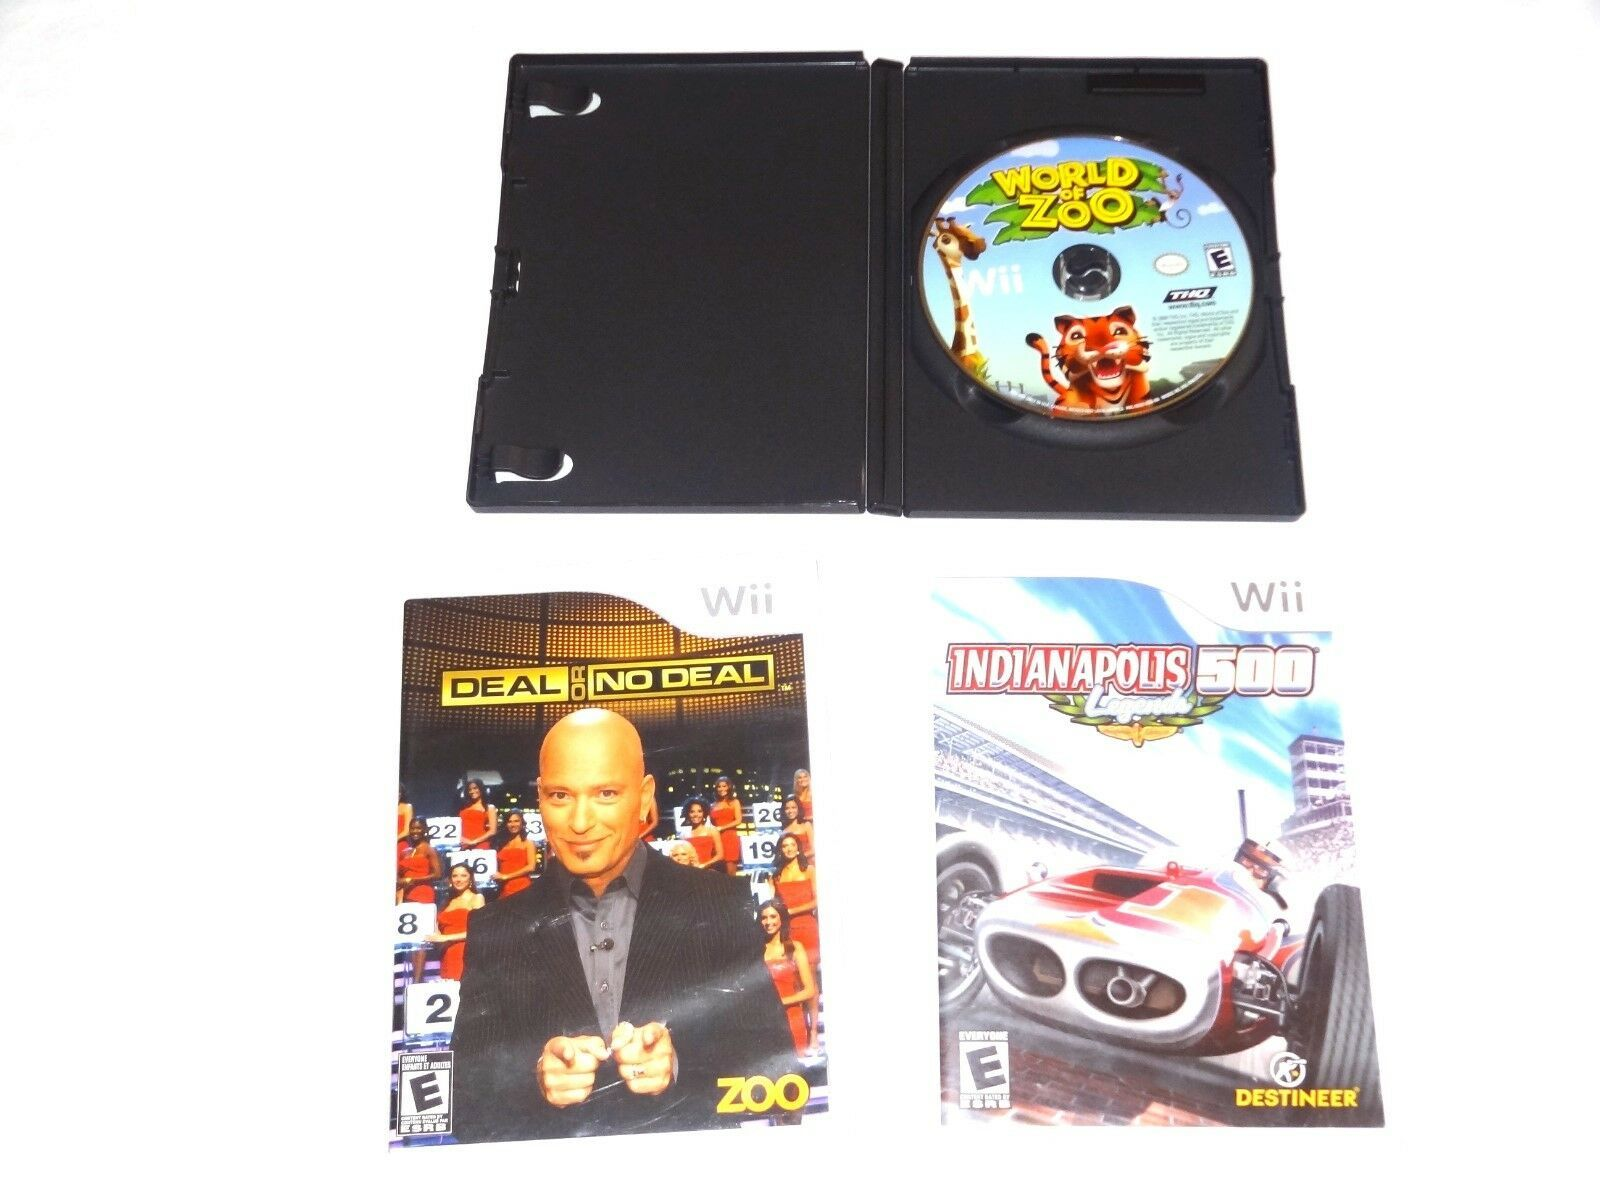 Nintendo Wii  World of Zoo Disk Only Indianapolis 500 Legends Deal or No deal